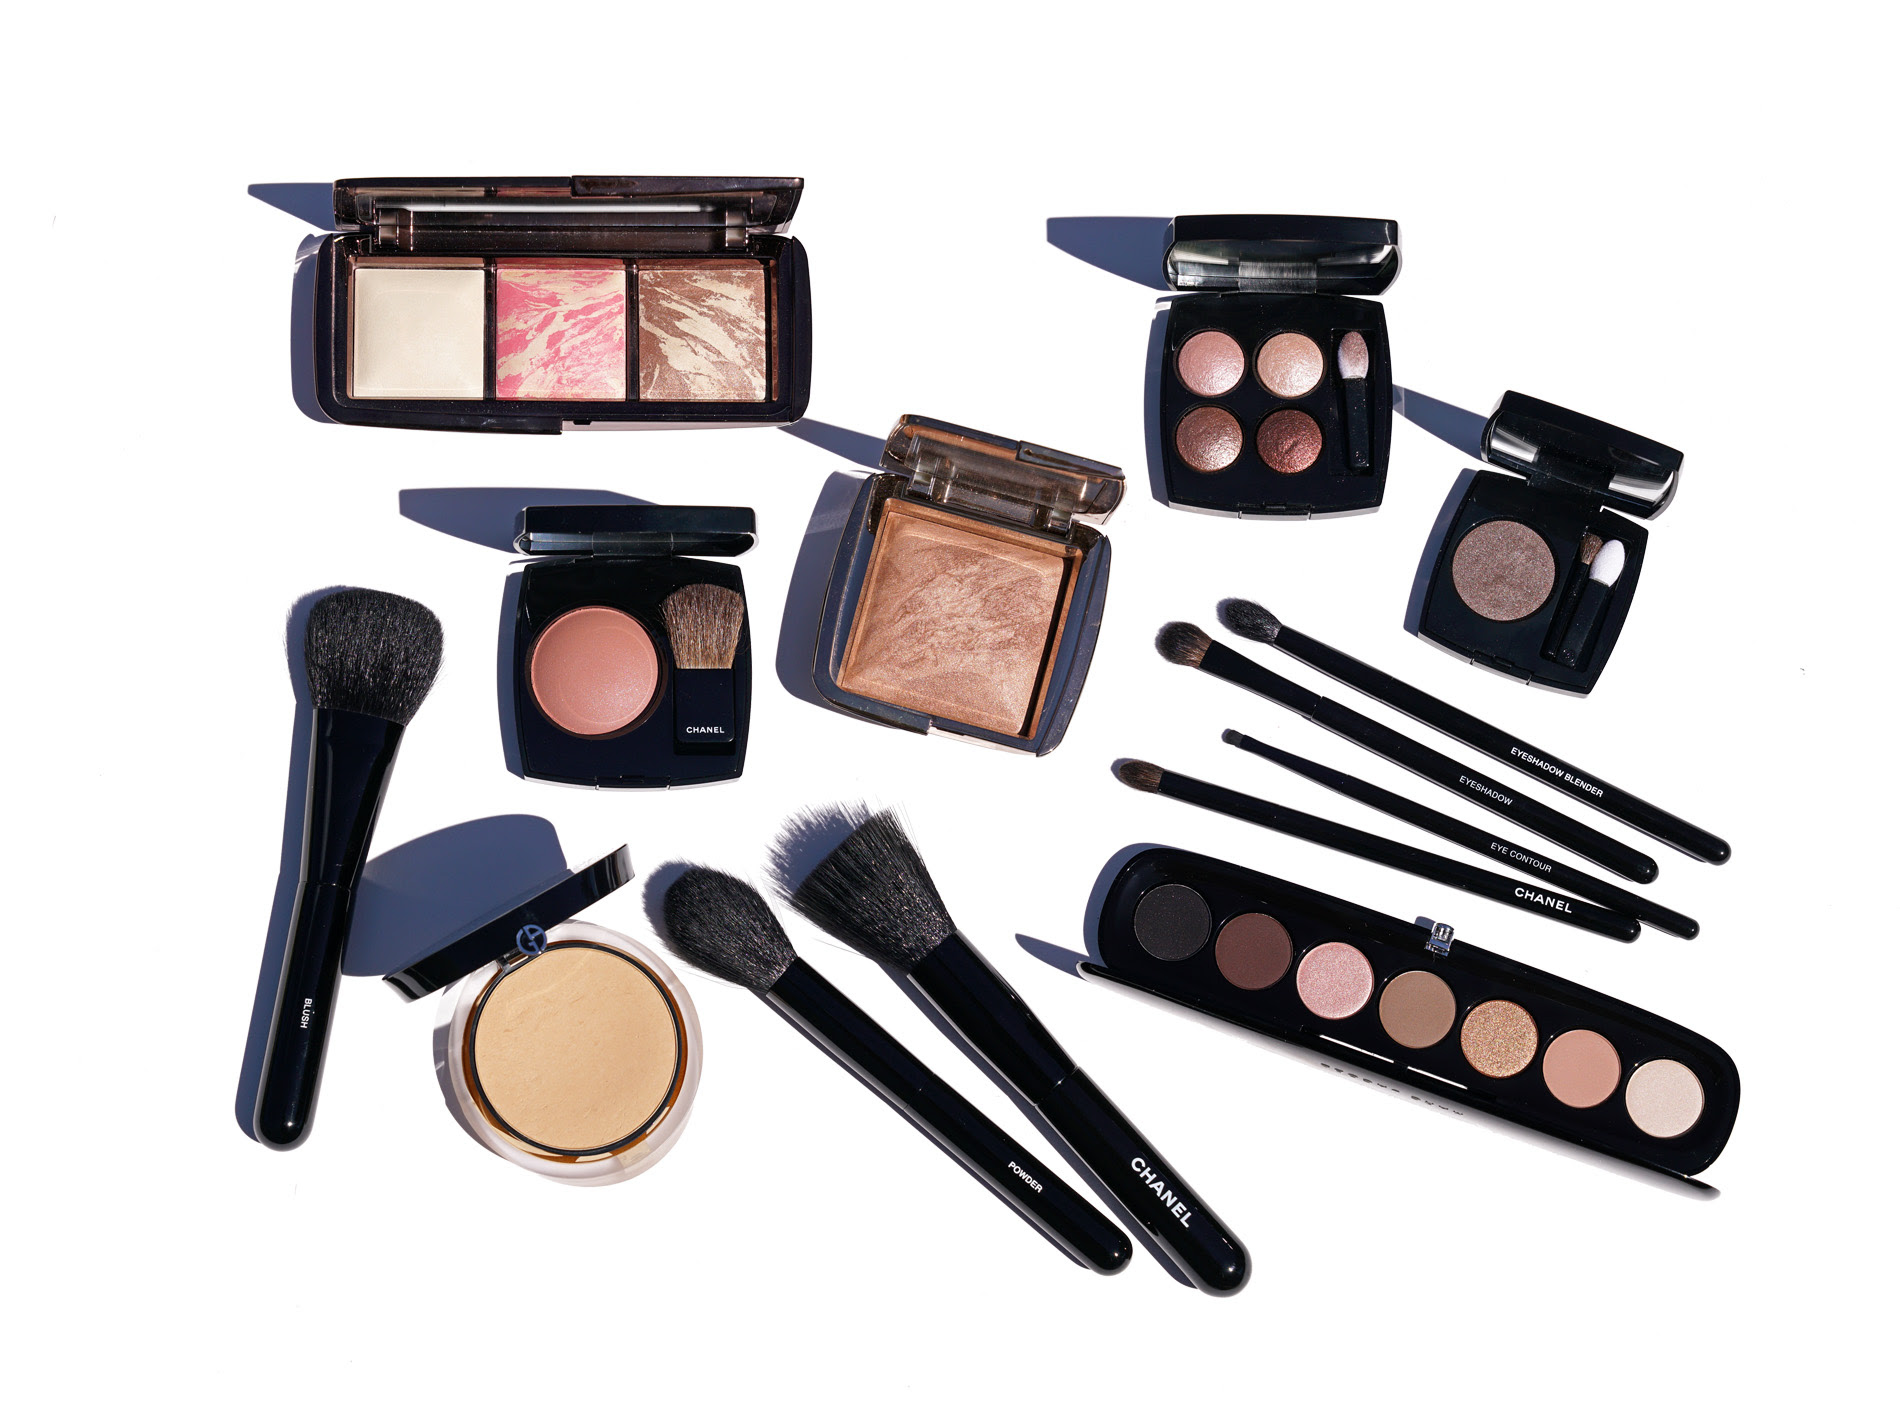 Chanel Makeup Brushes - New Design   The Beauty Look Book